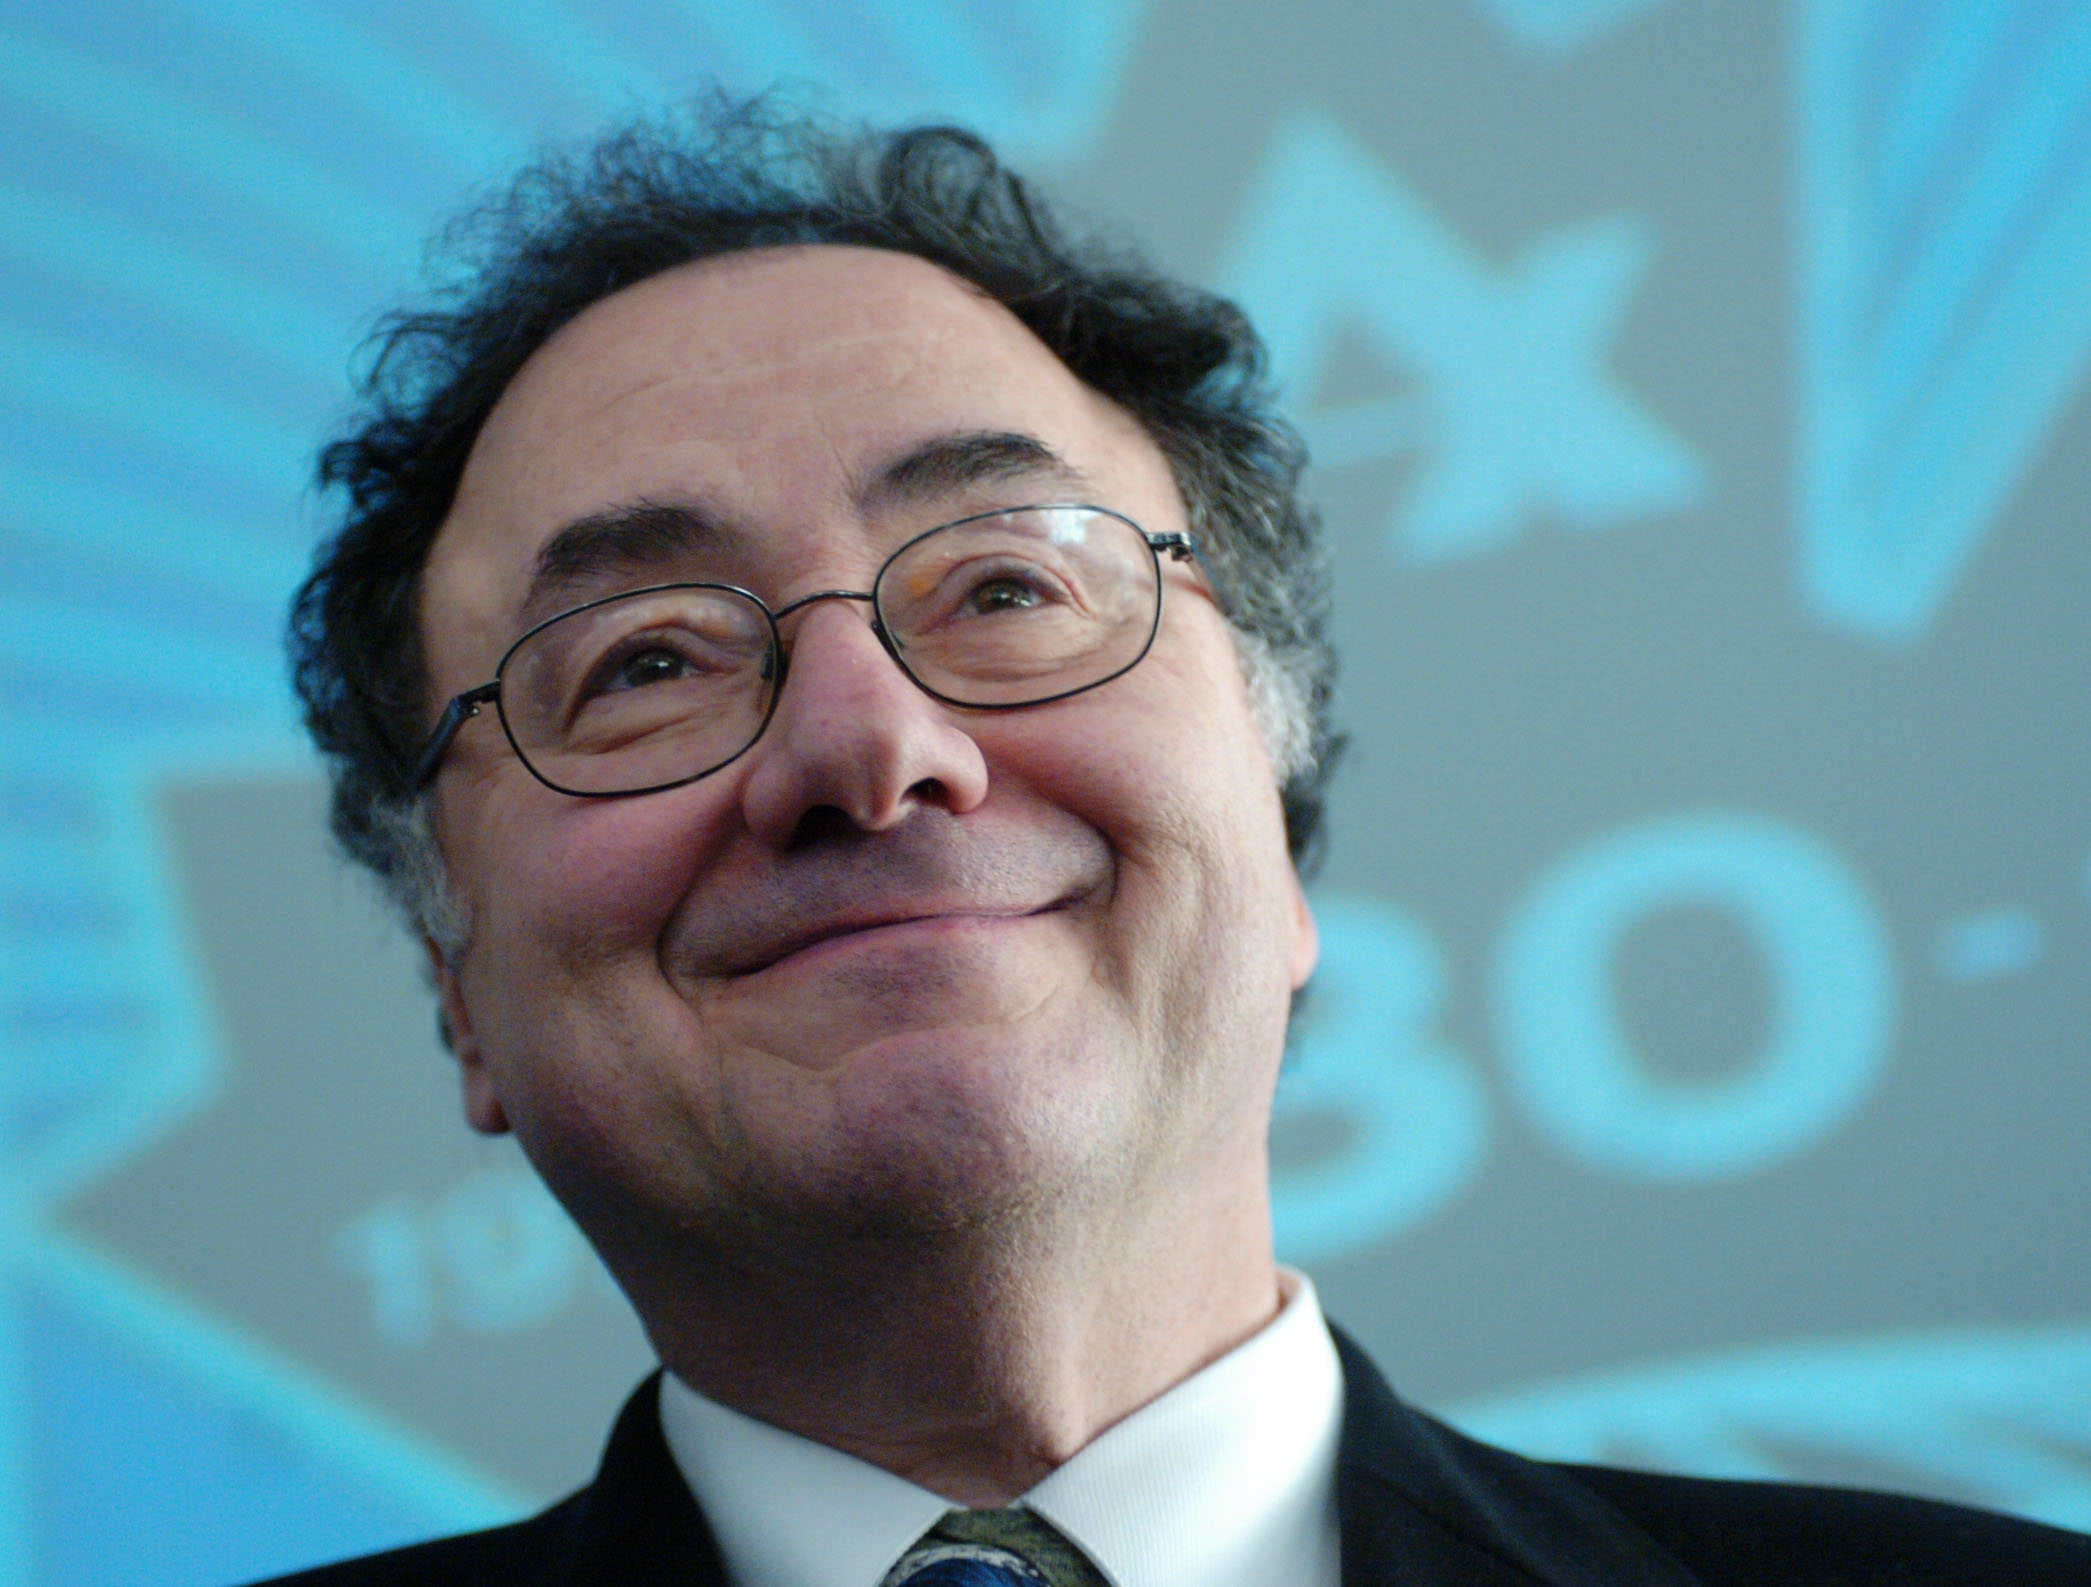 Canadian billionaire Barry Sherman, wife Honey found dead at home